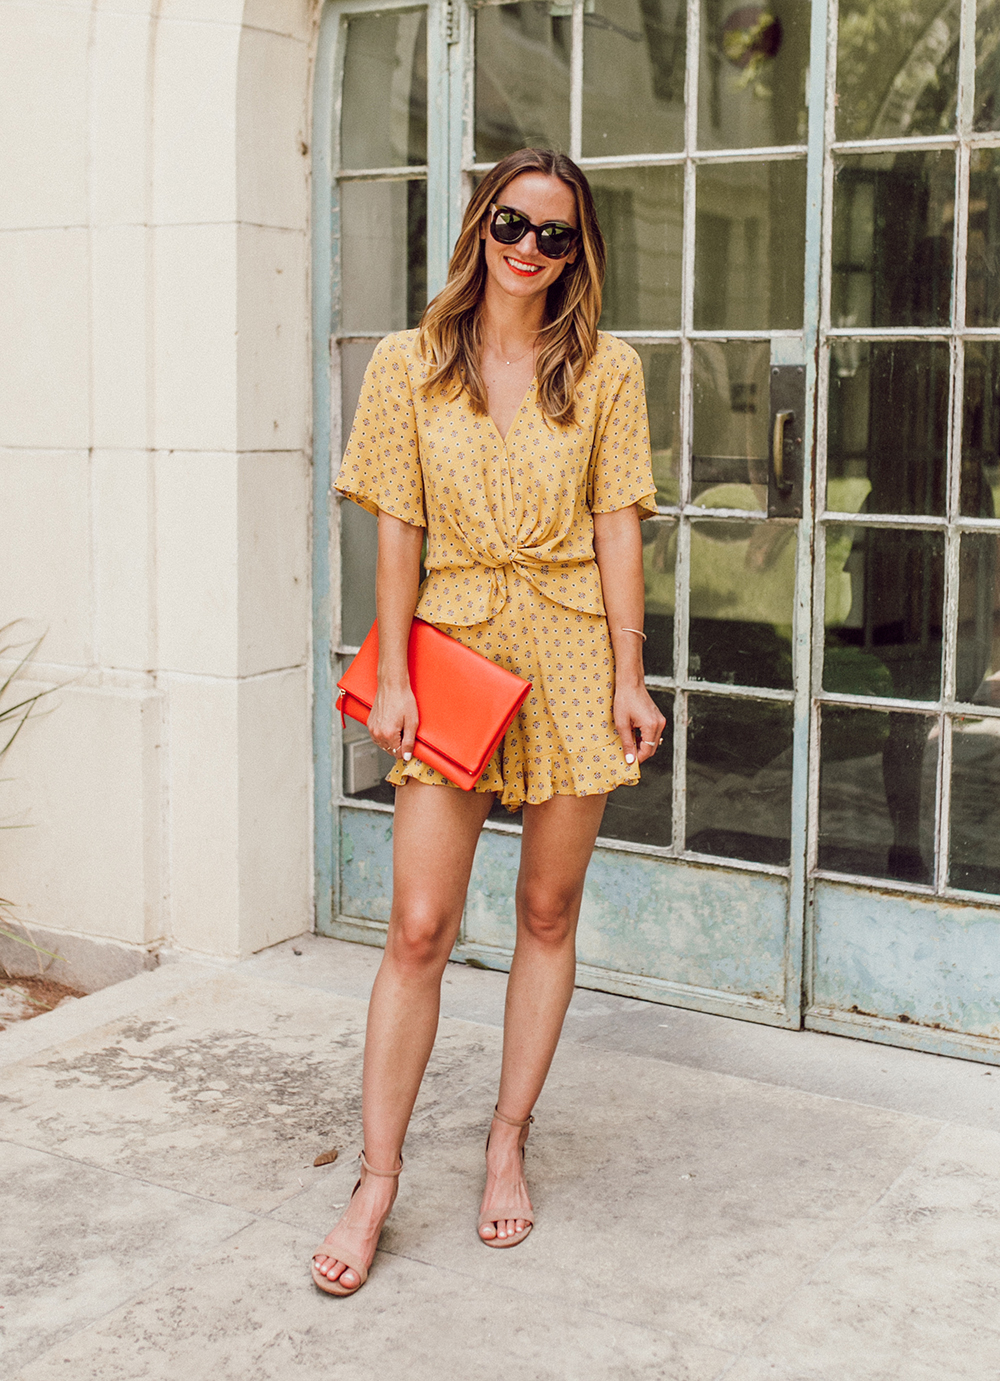 livvyland-blog-olivia-watson-austin-texas-fashion-lifestyle-blogger-river-island-floral-print-yellow-knot-front-romper-summer-occasion-outfit-idea-4